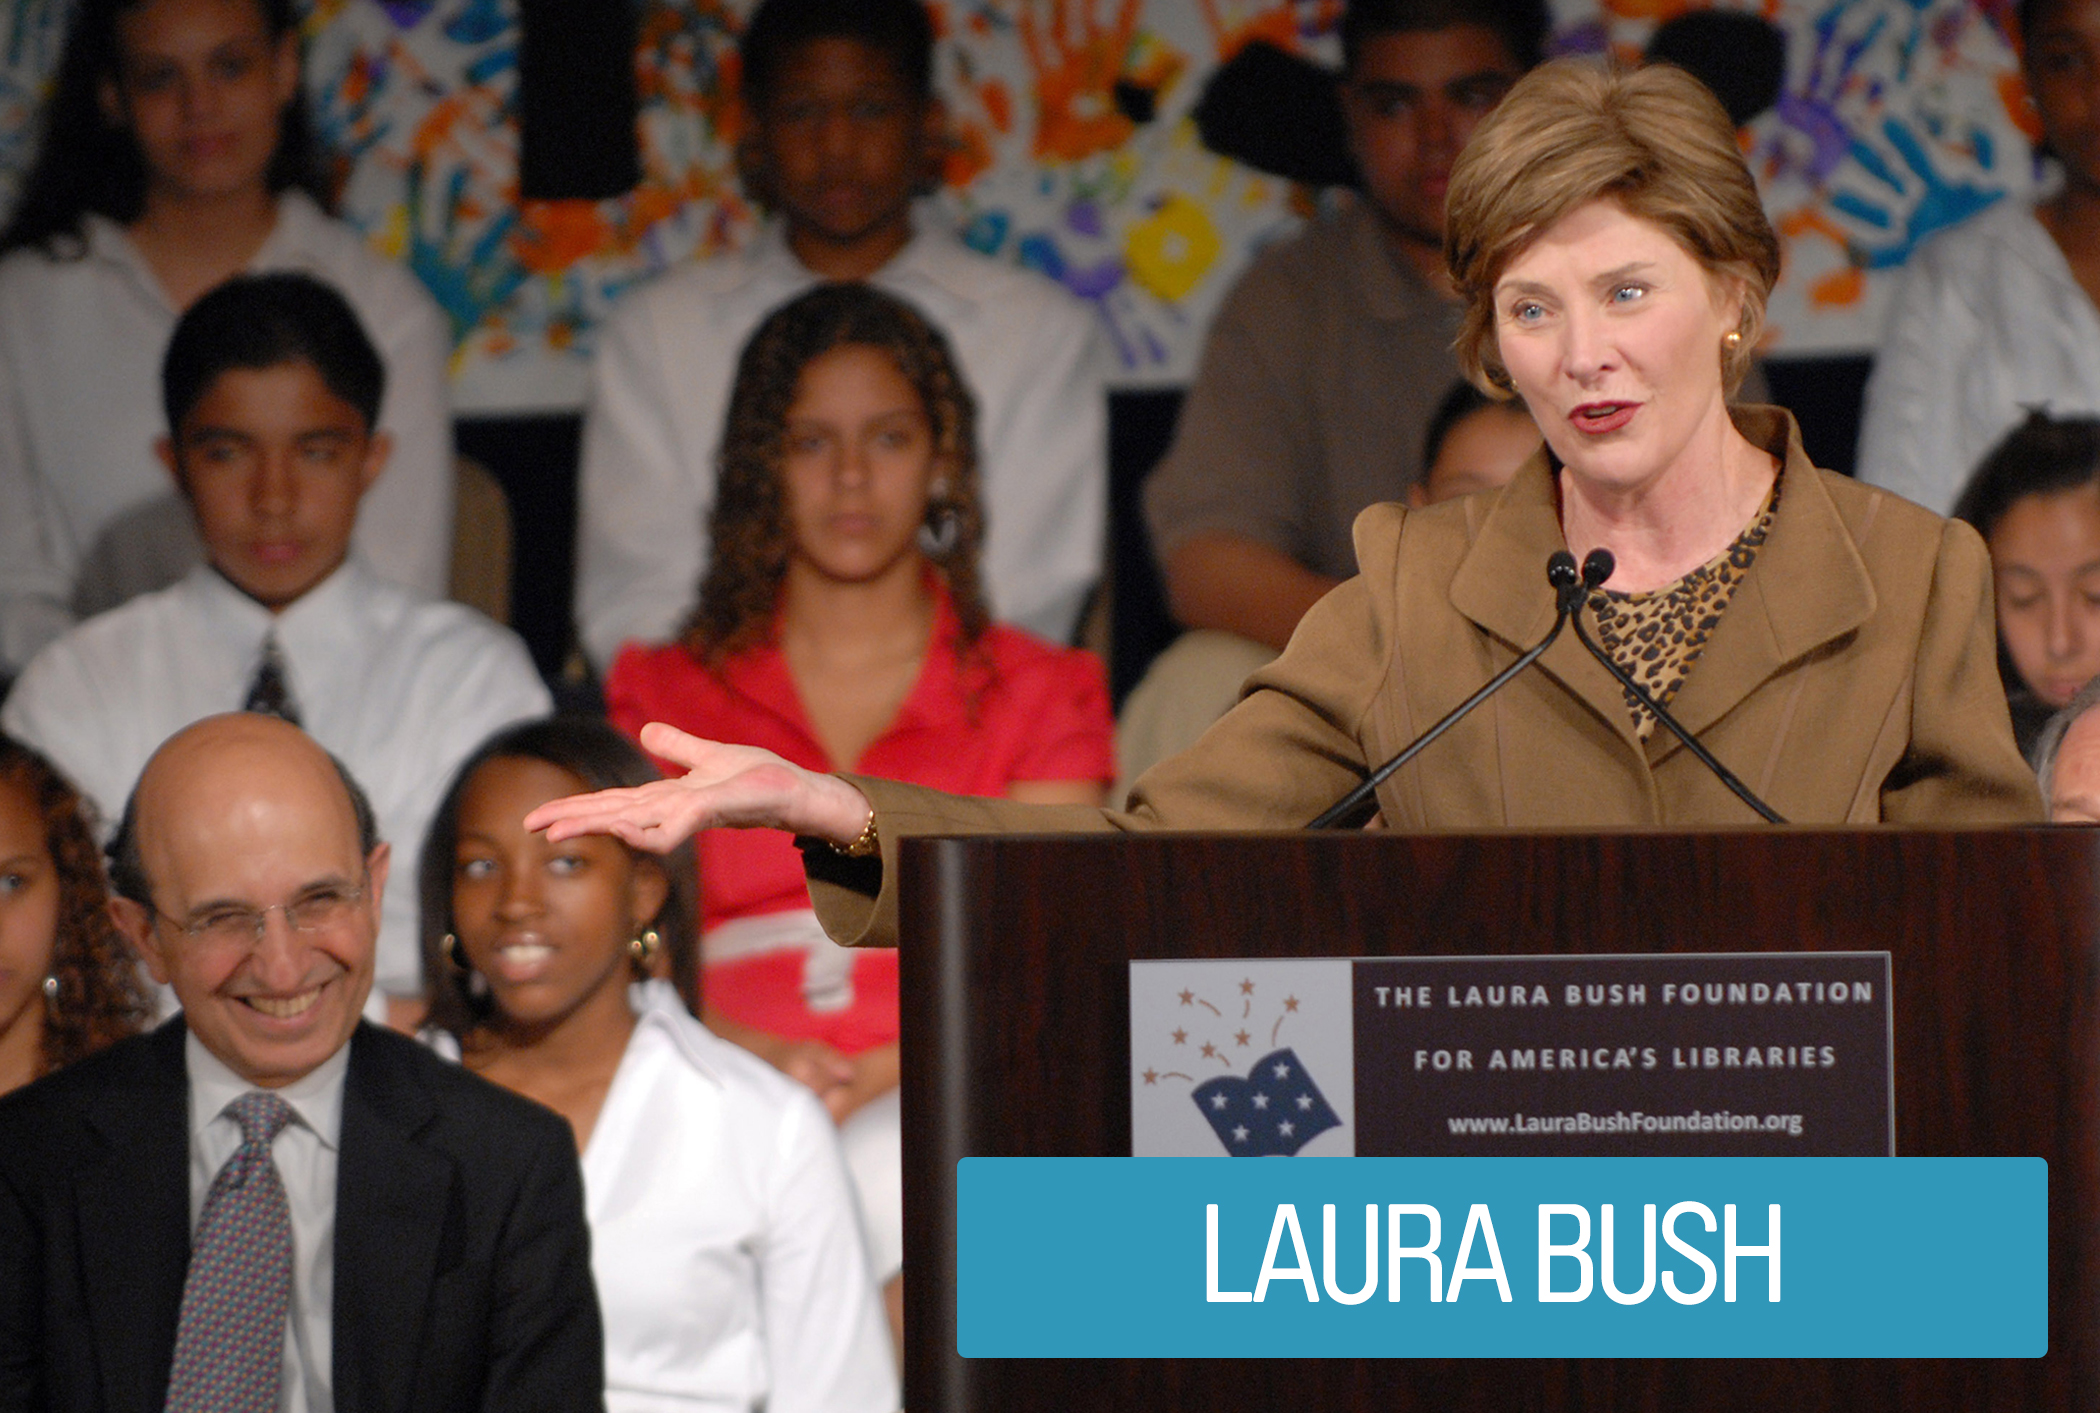 First Lady Laura Bush, a former teacher and librarian, focused on education by advocating for her husband's No Child Left Behind Act that devoted federal funds to local school districts for teacher training, recruitment and raises. She also stressed the importance of early education, global literacy and better library resources.